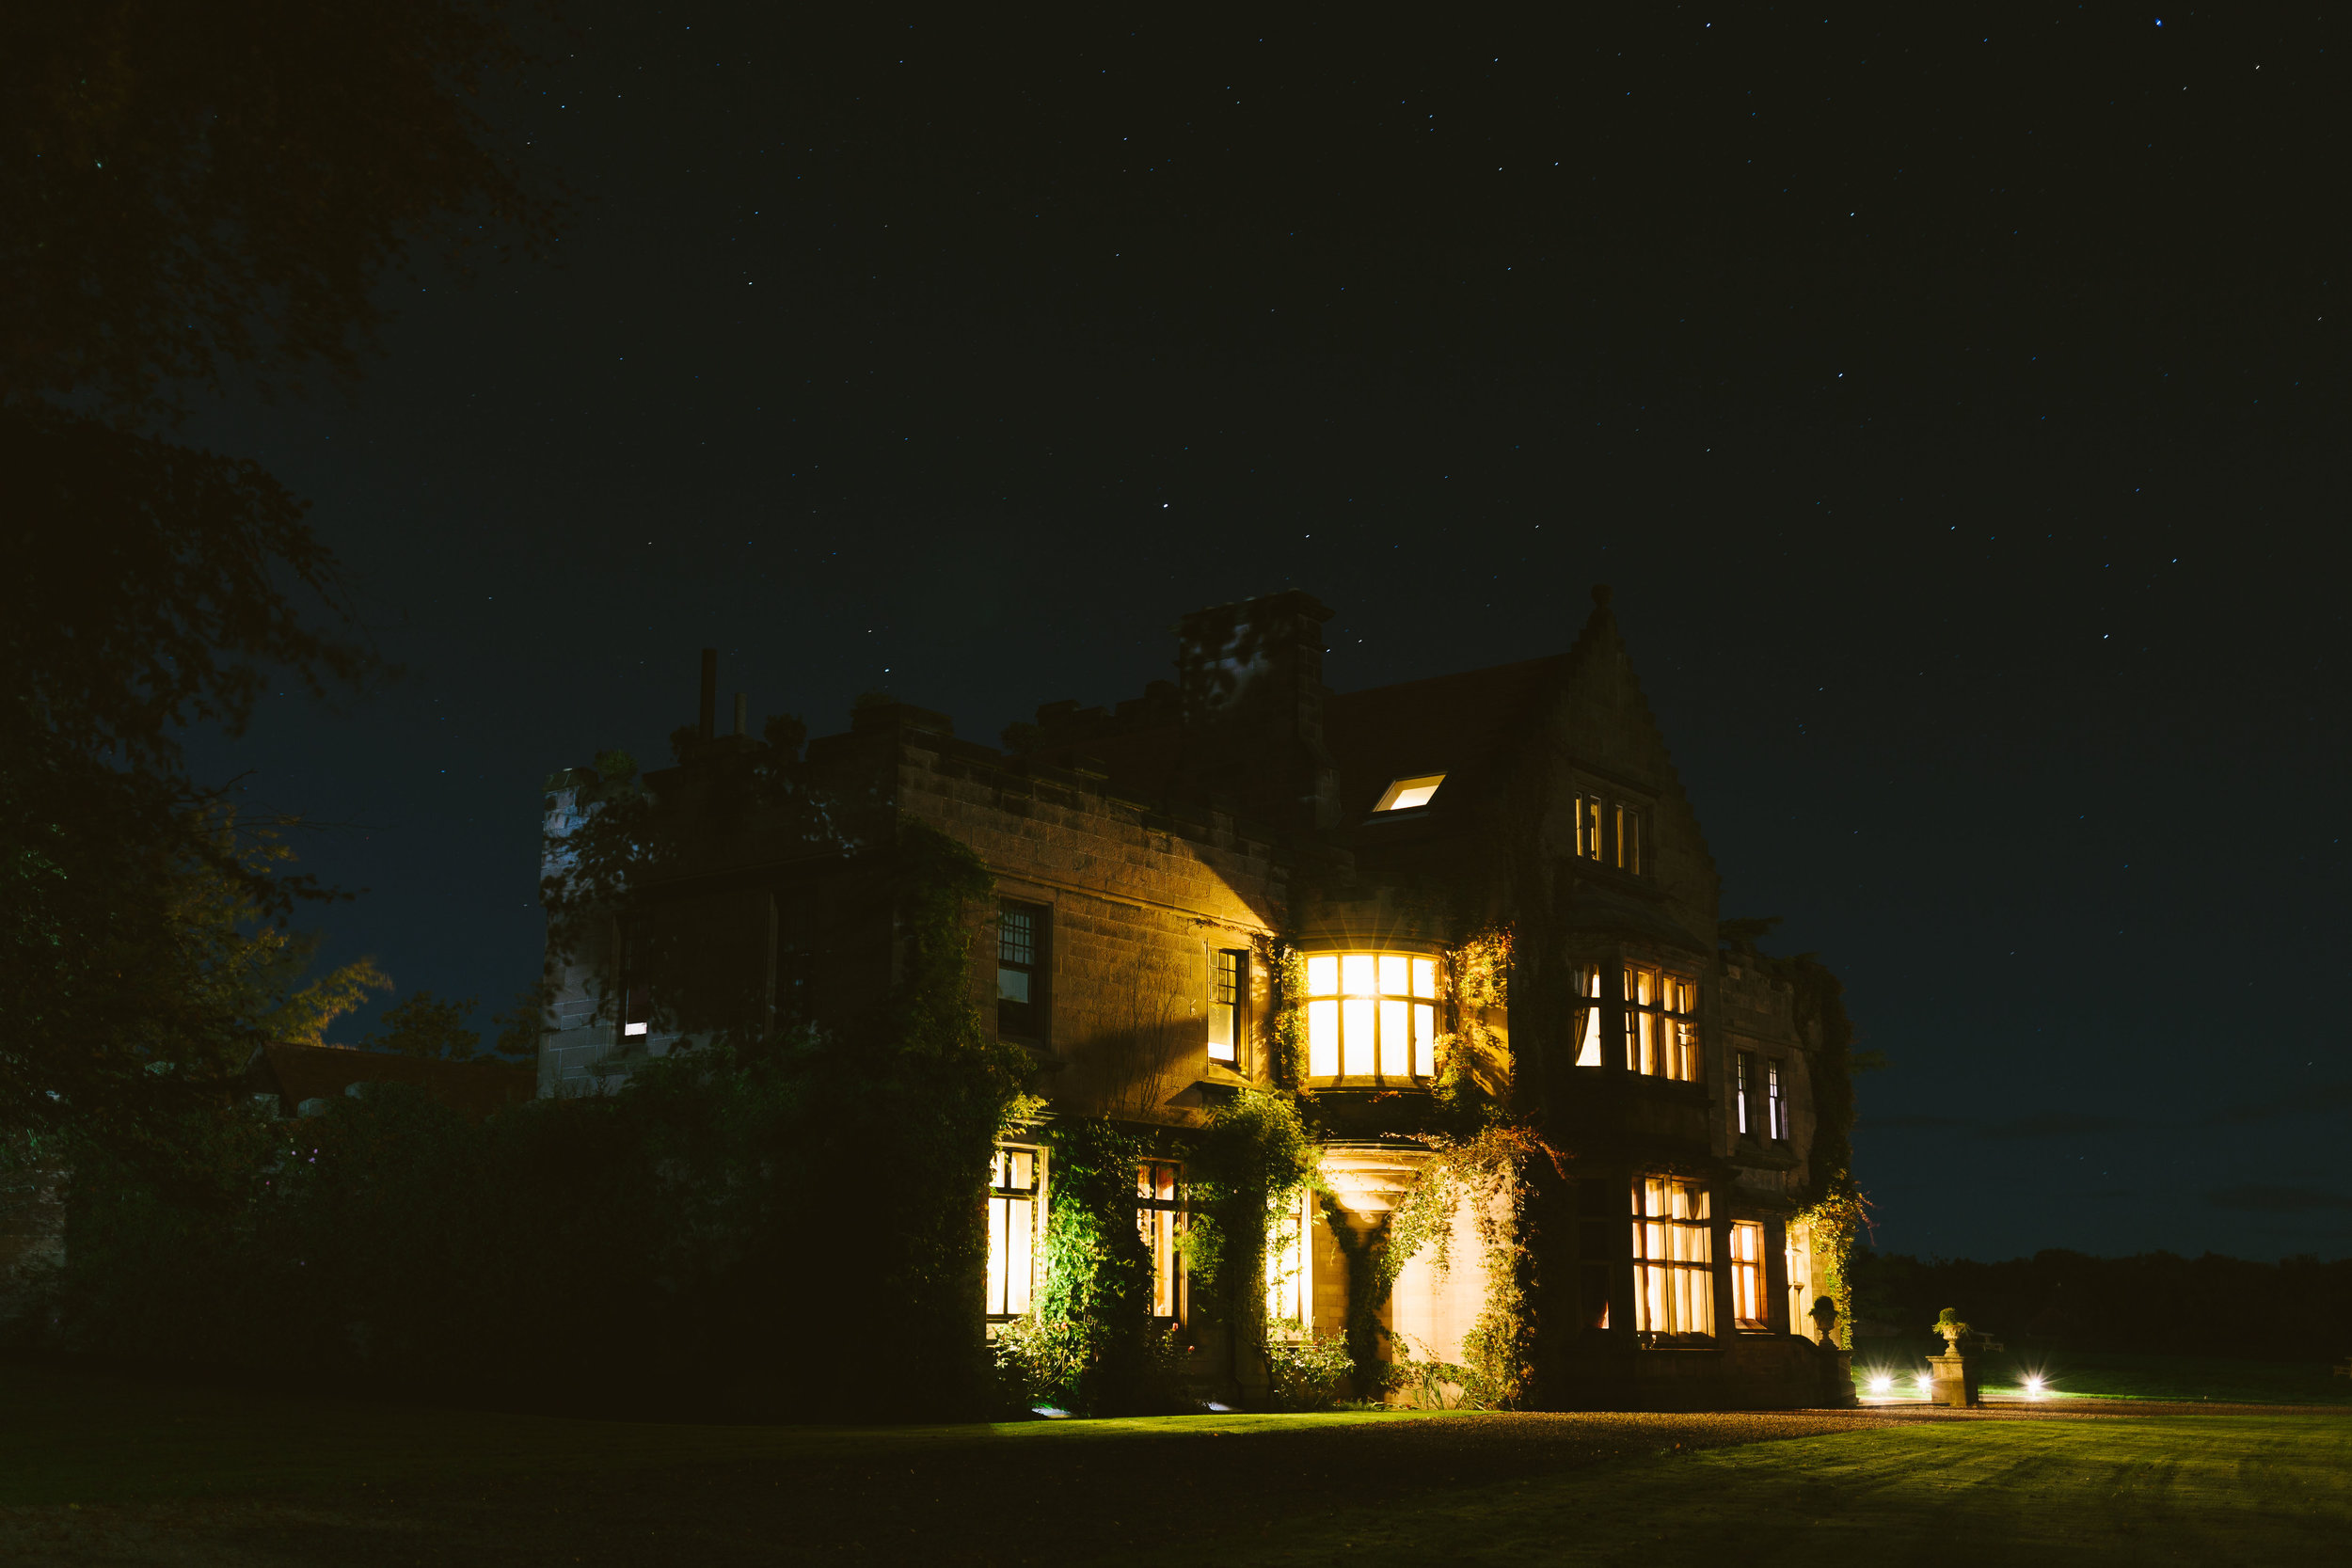 Ellingham Hall wedding venue Northumberland at night by Barry Forshaw